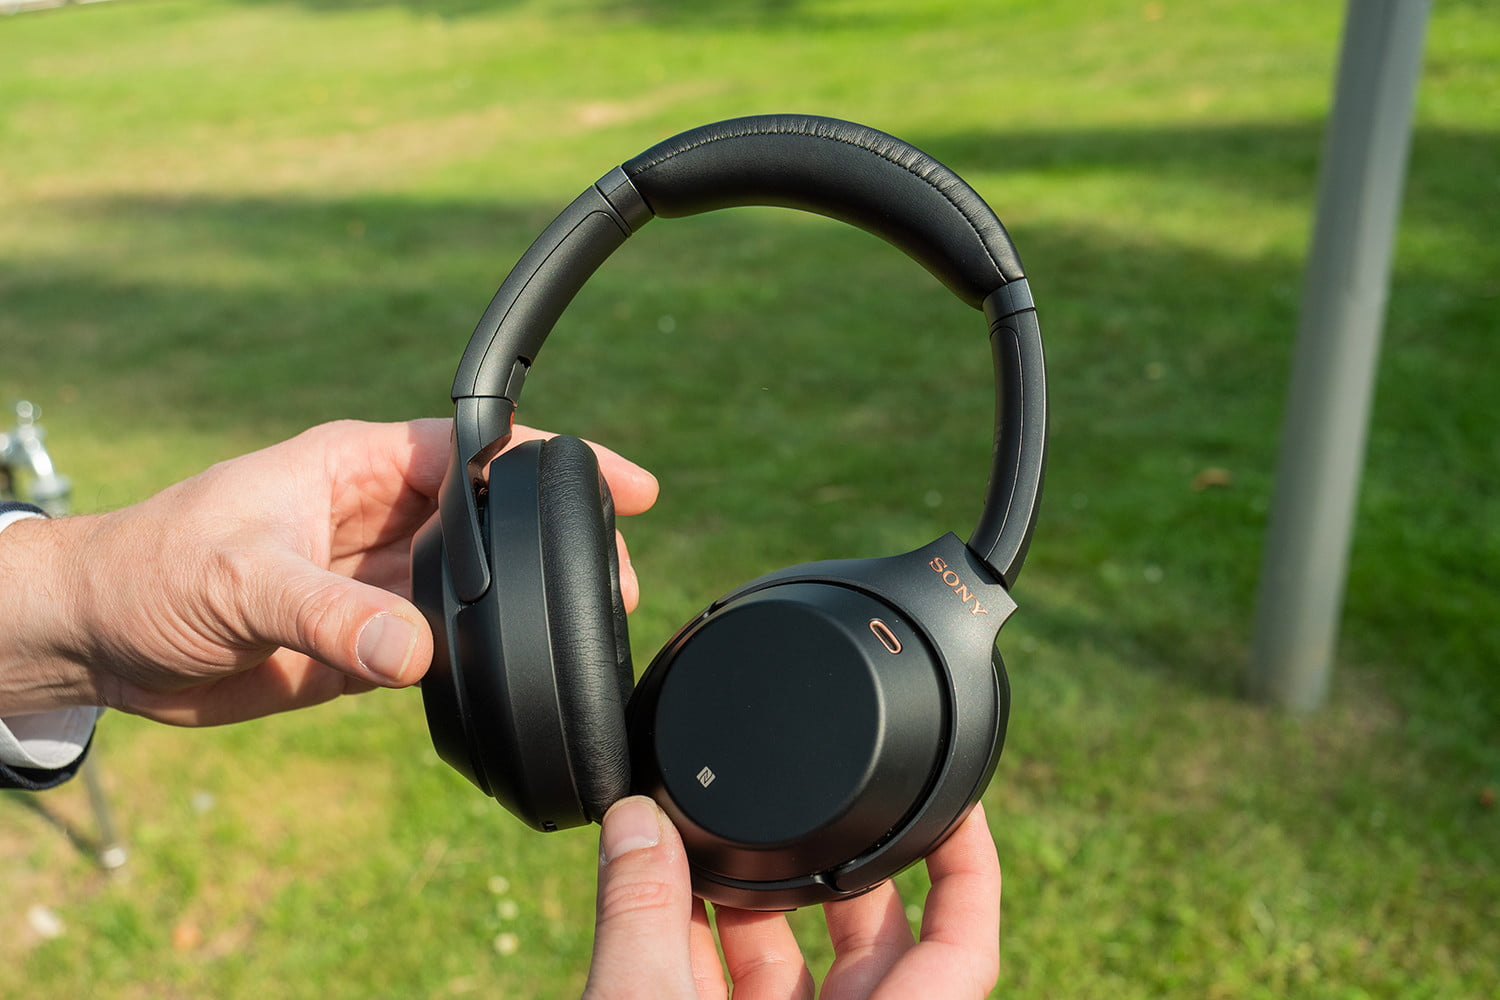 2580a3f19e5 Amazon cuts prices on Sony WH-1000XM3 and Bose QC 35 noise-canceling  headphones